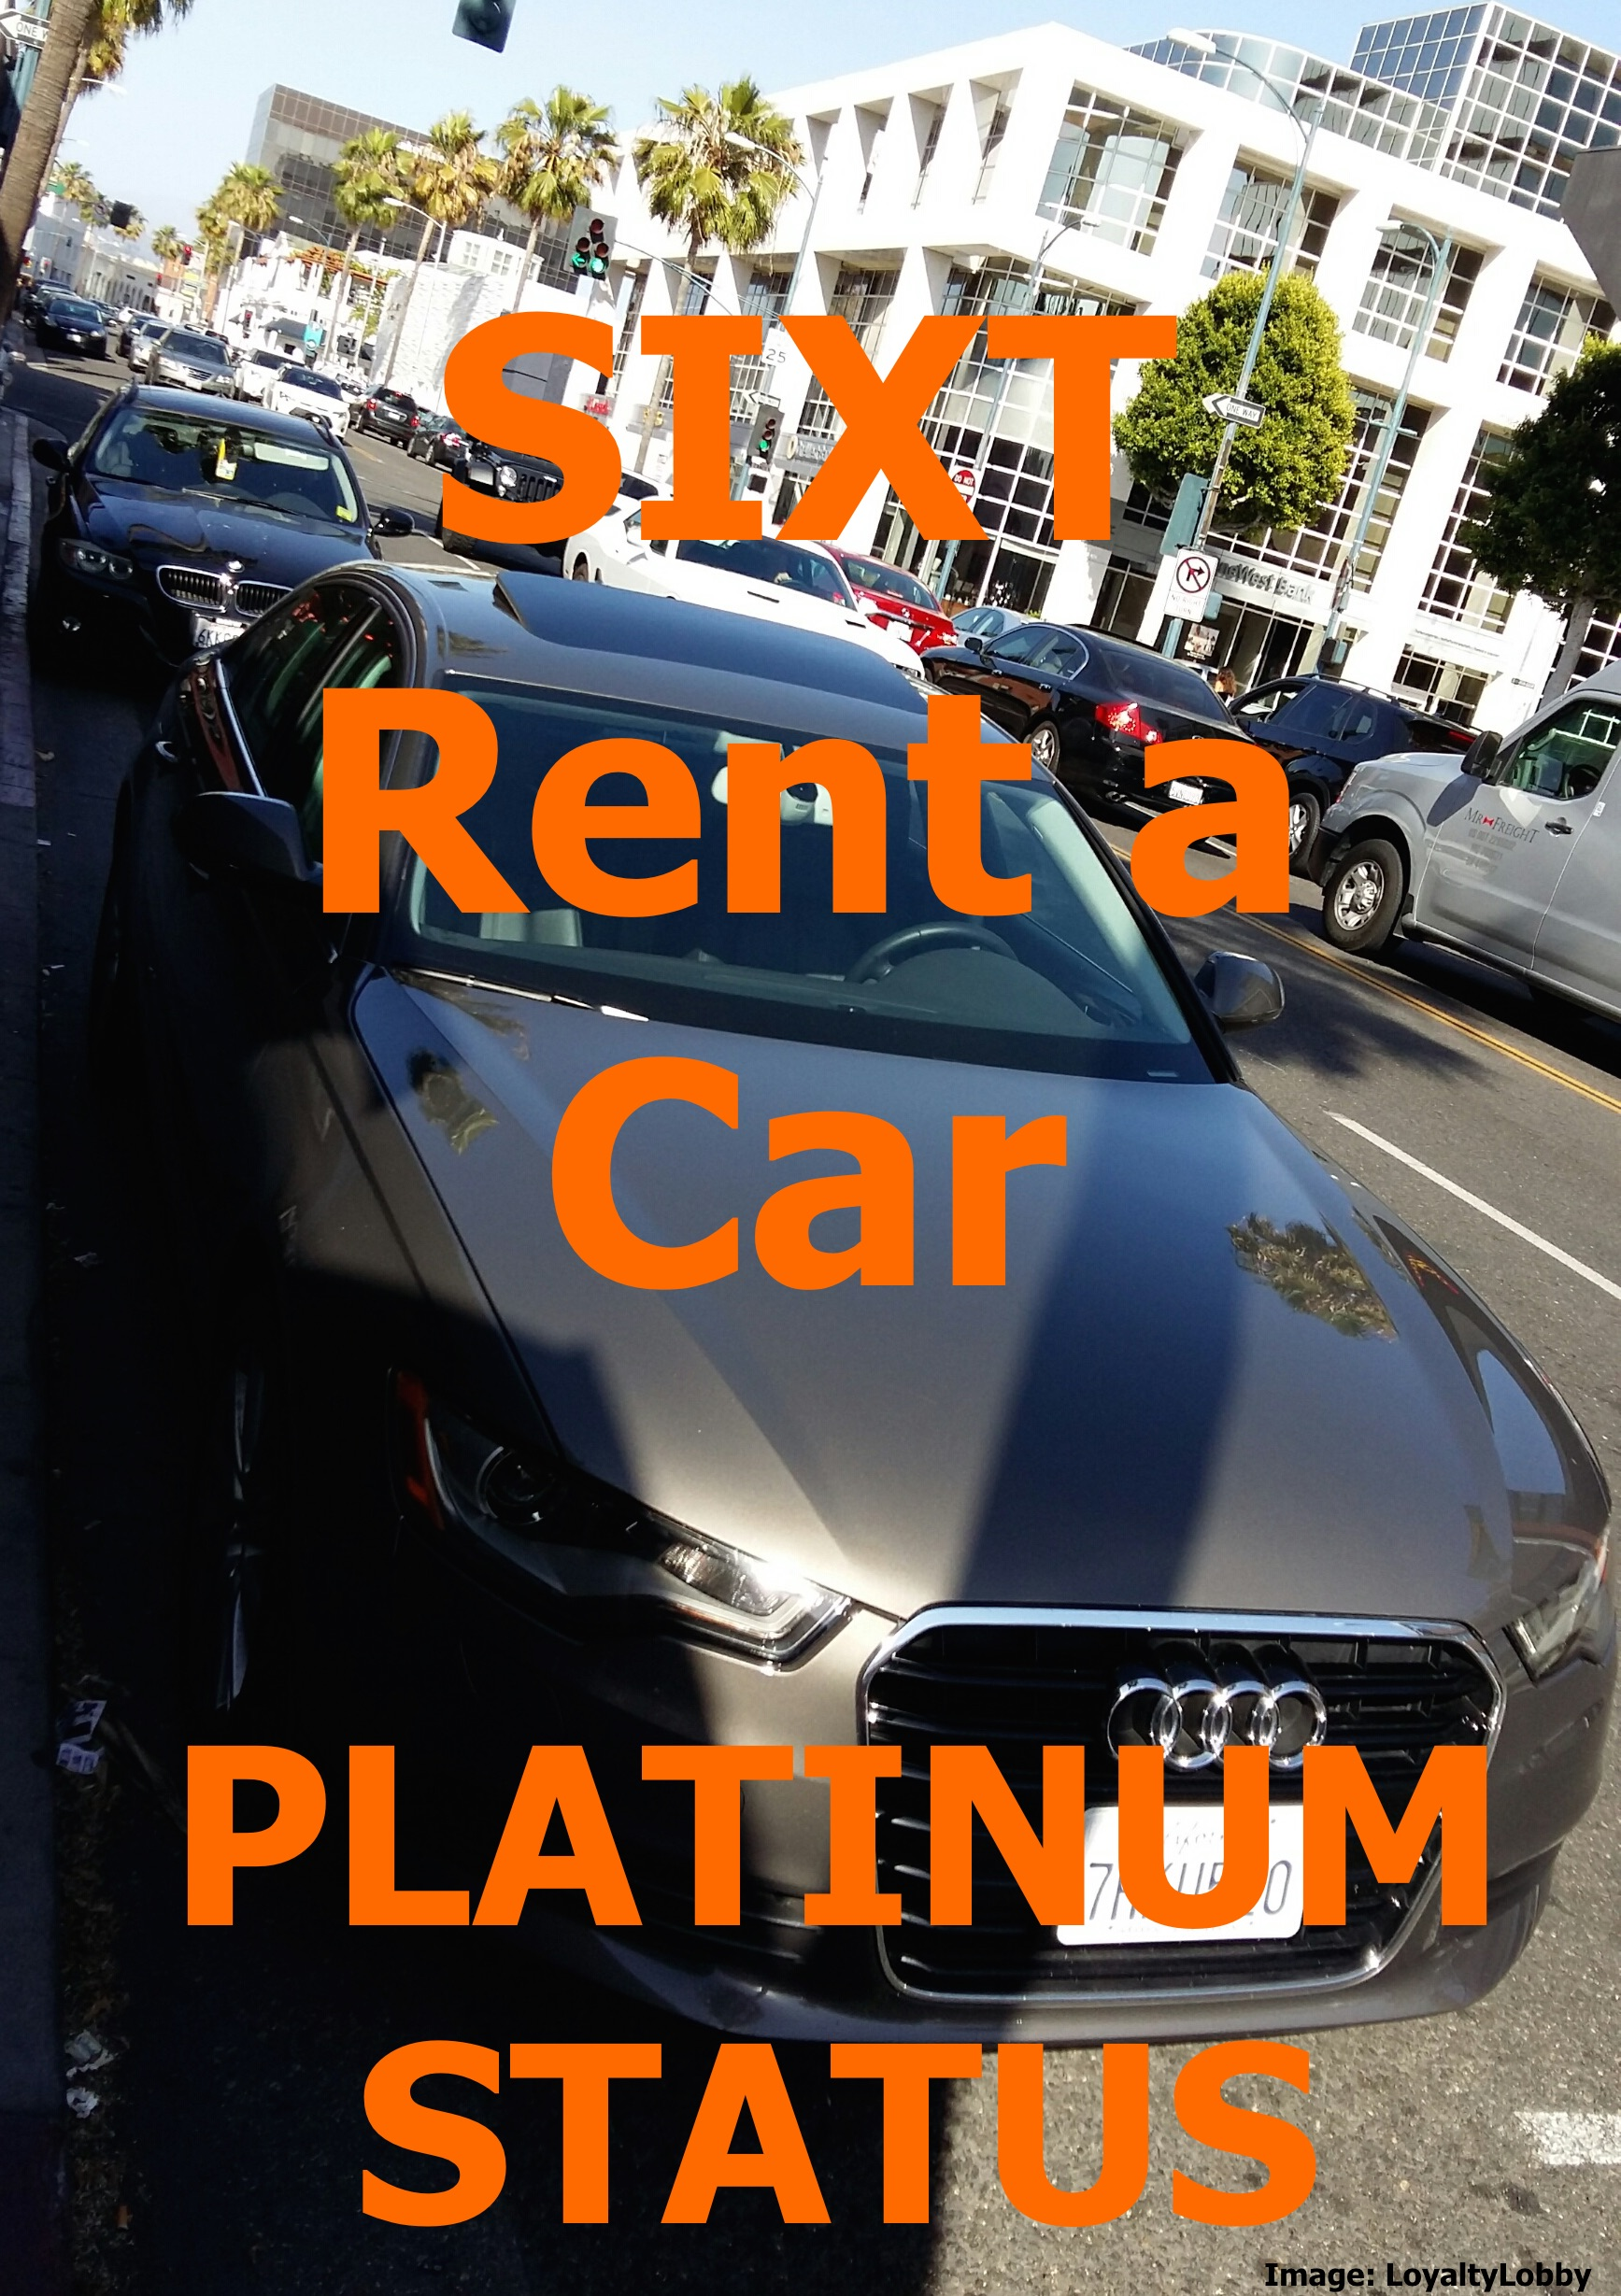 Sixt Rent A Car Free Platinum Gold Status Match For